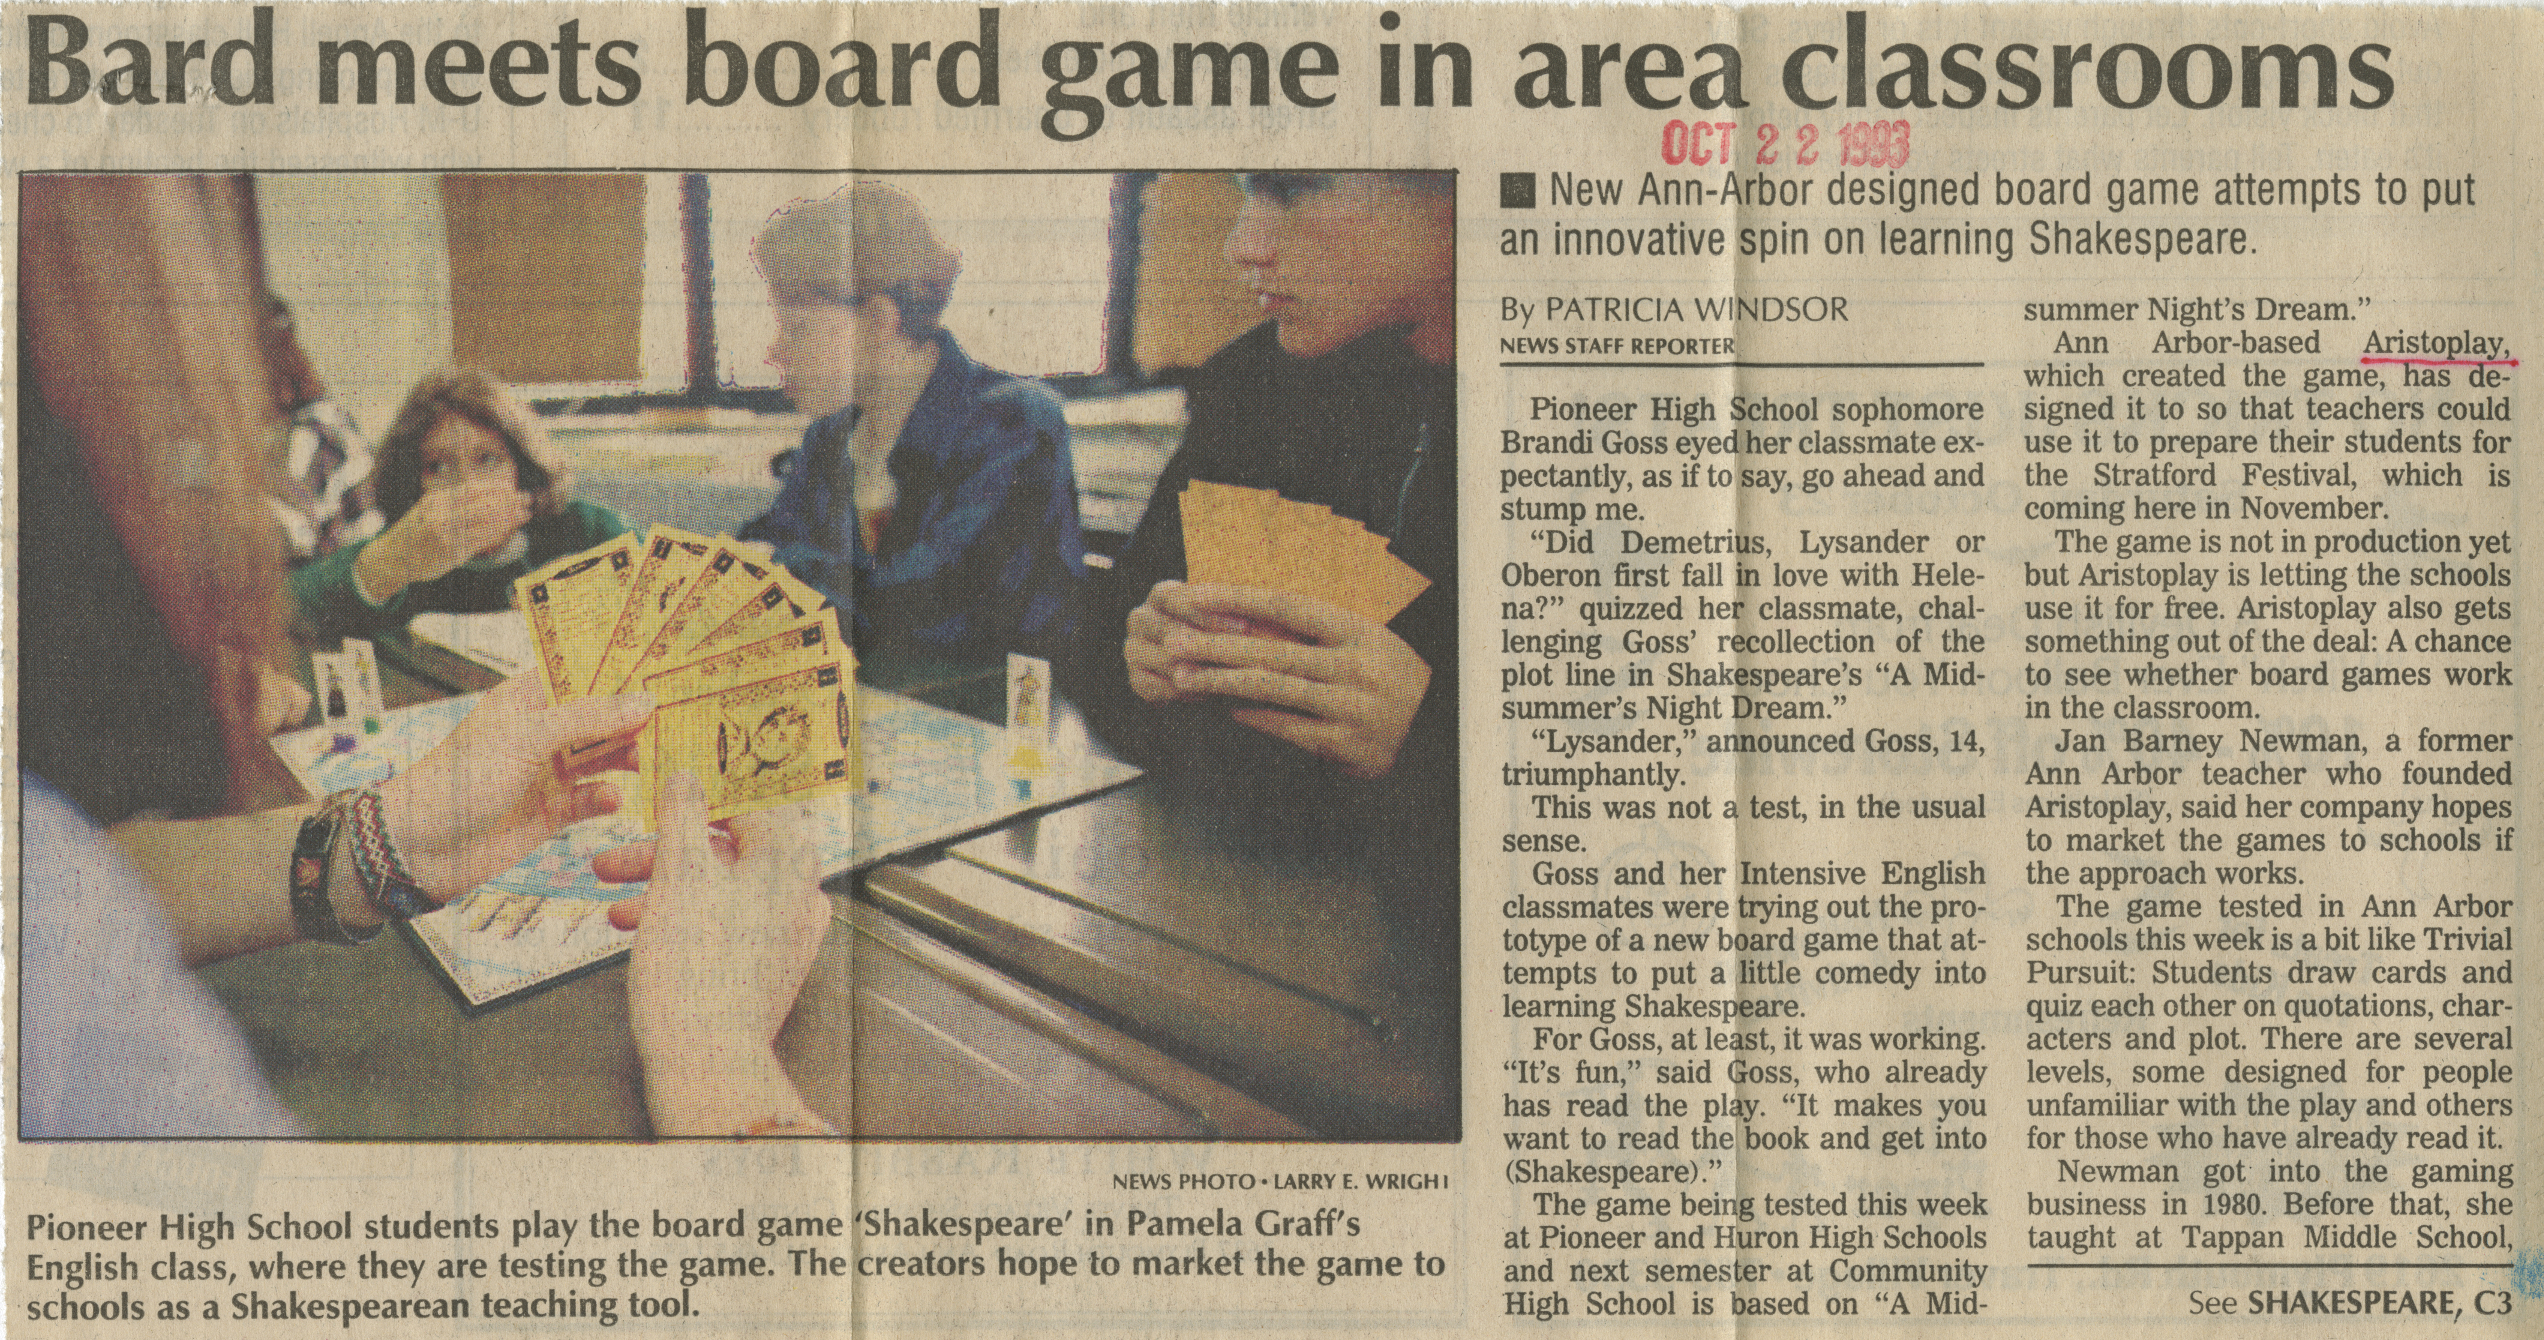 Bard meets board game in area classrooms image